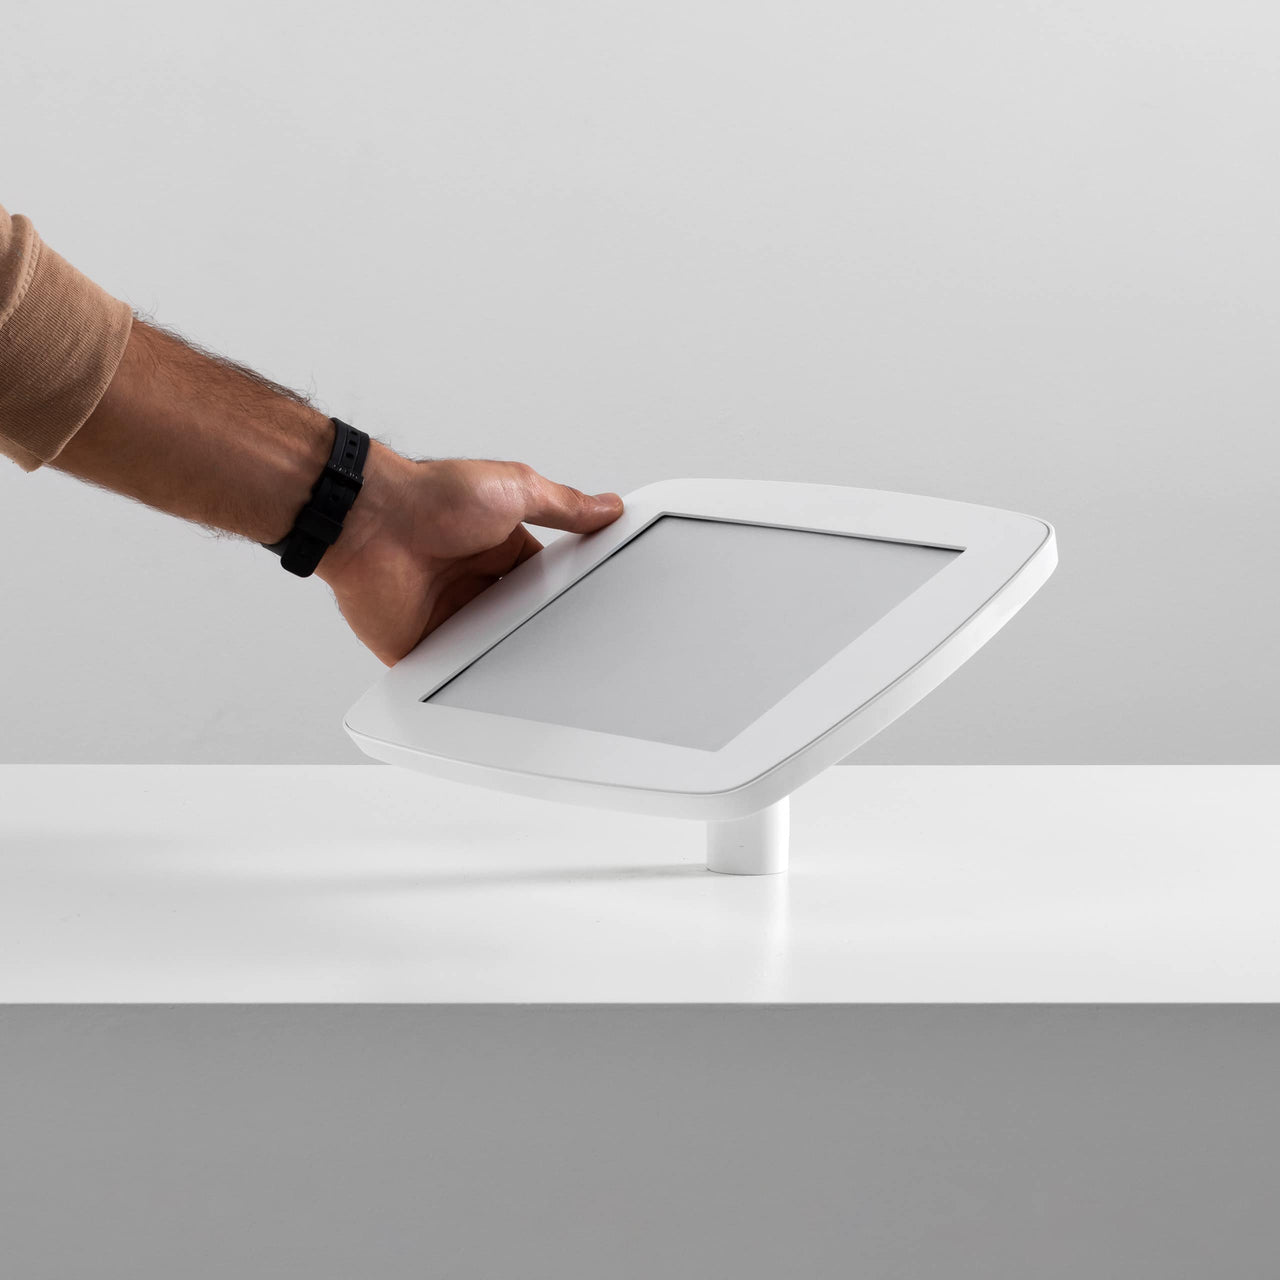 Bouncepad Desk - A secure tablet & iPad desk mount in white.